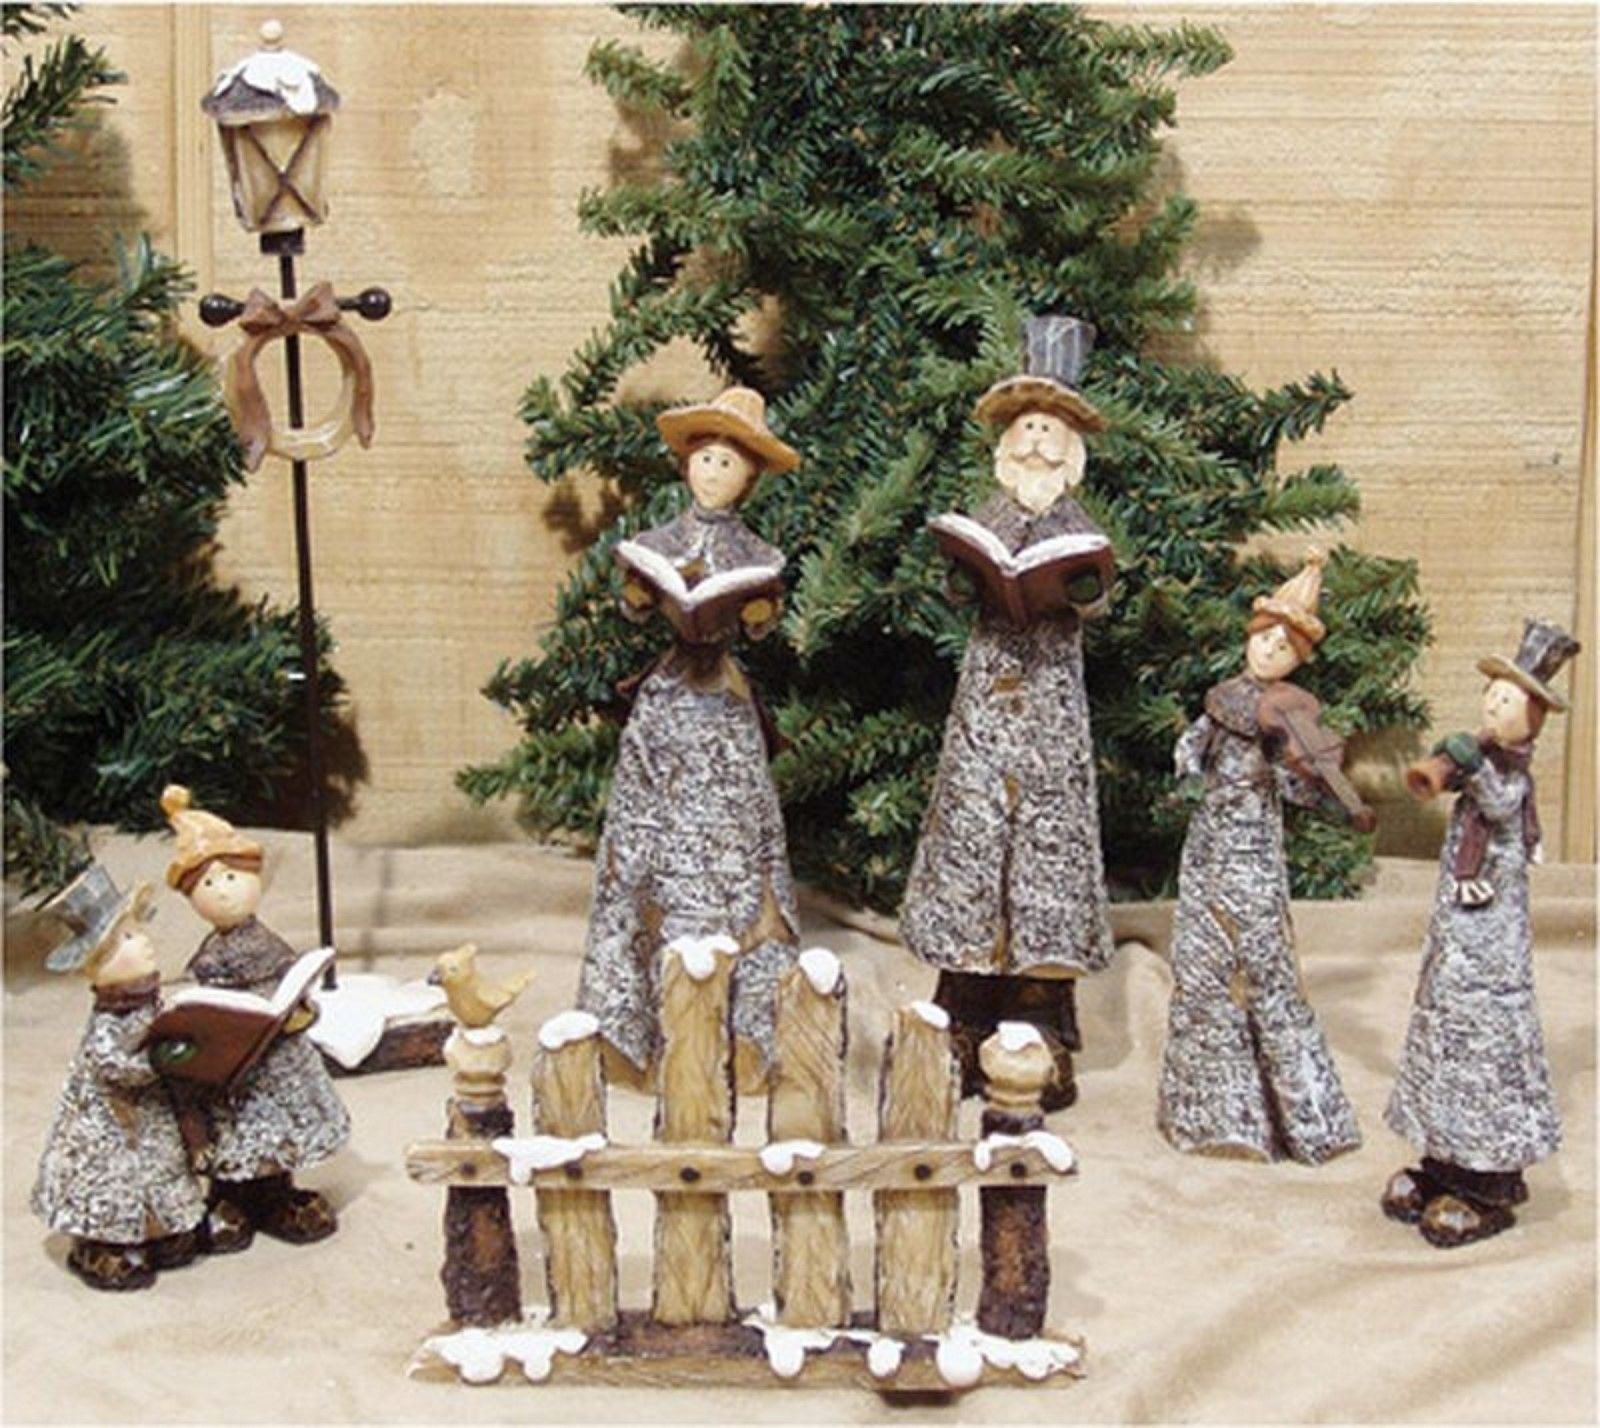 Christmas carolers figurines for sale - Figurines 117413 7pc Primitive Resin Christmas Carolers Buy It Now Only